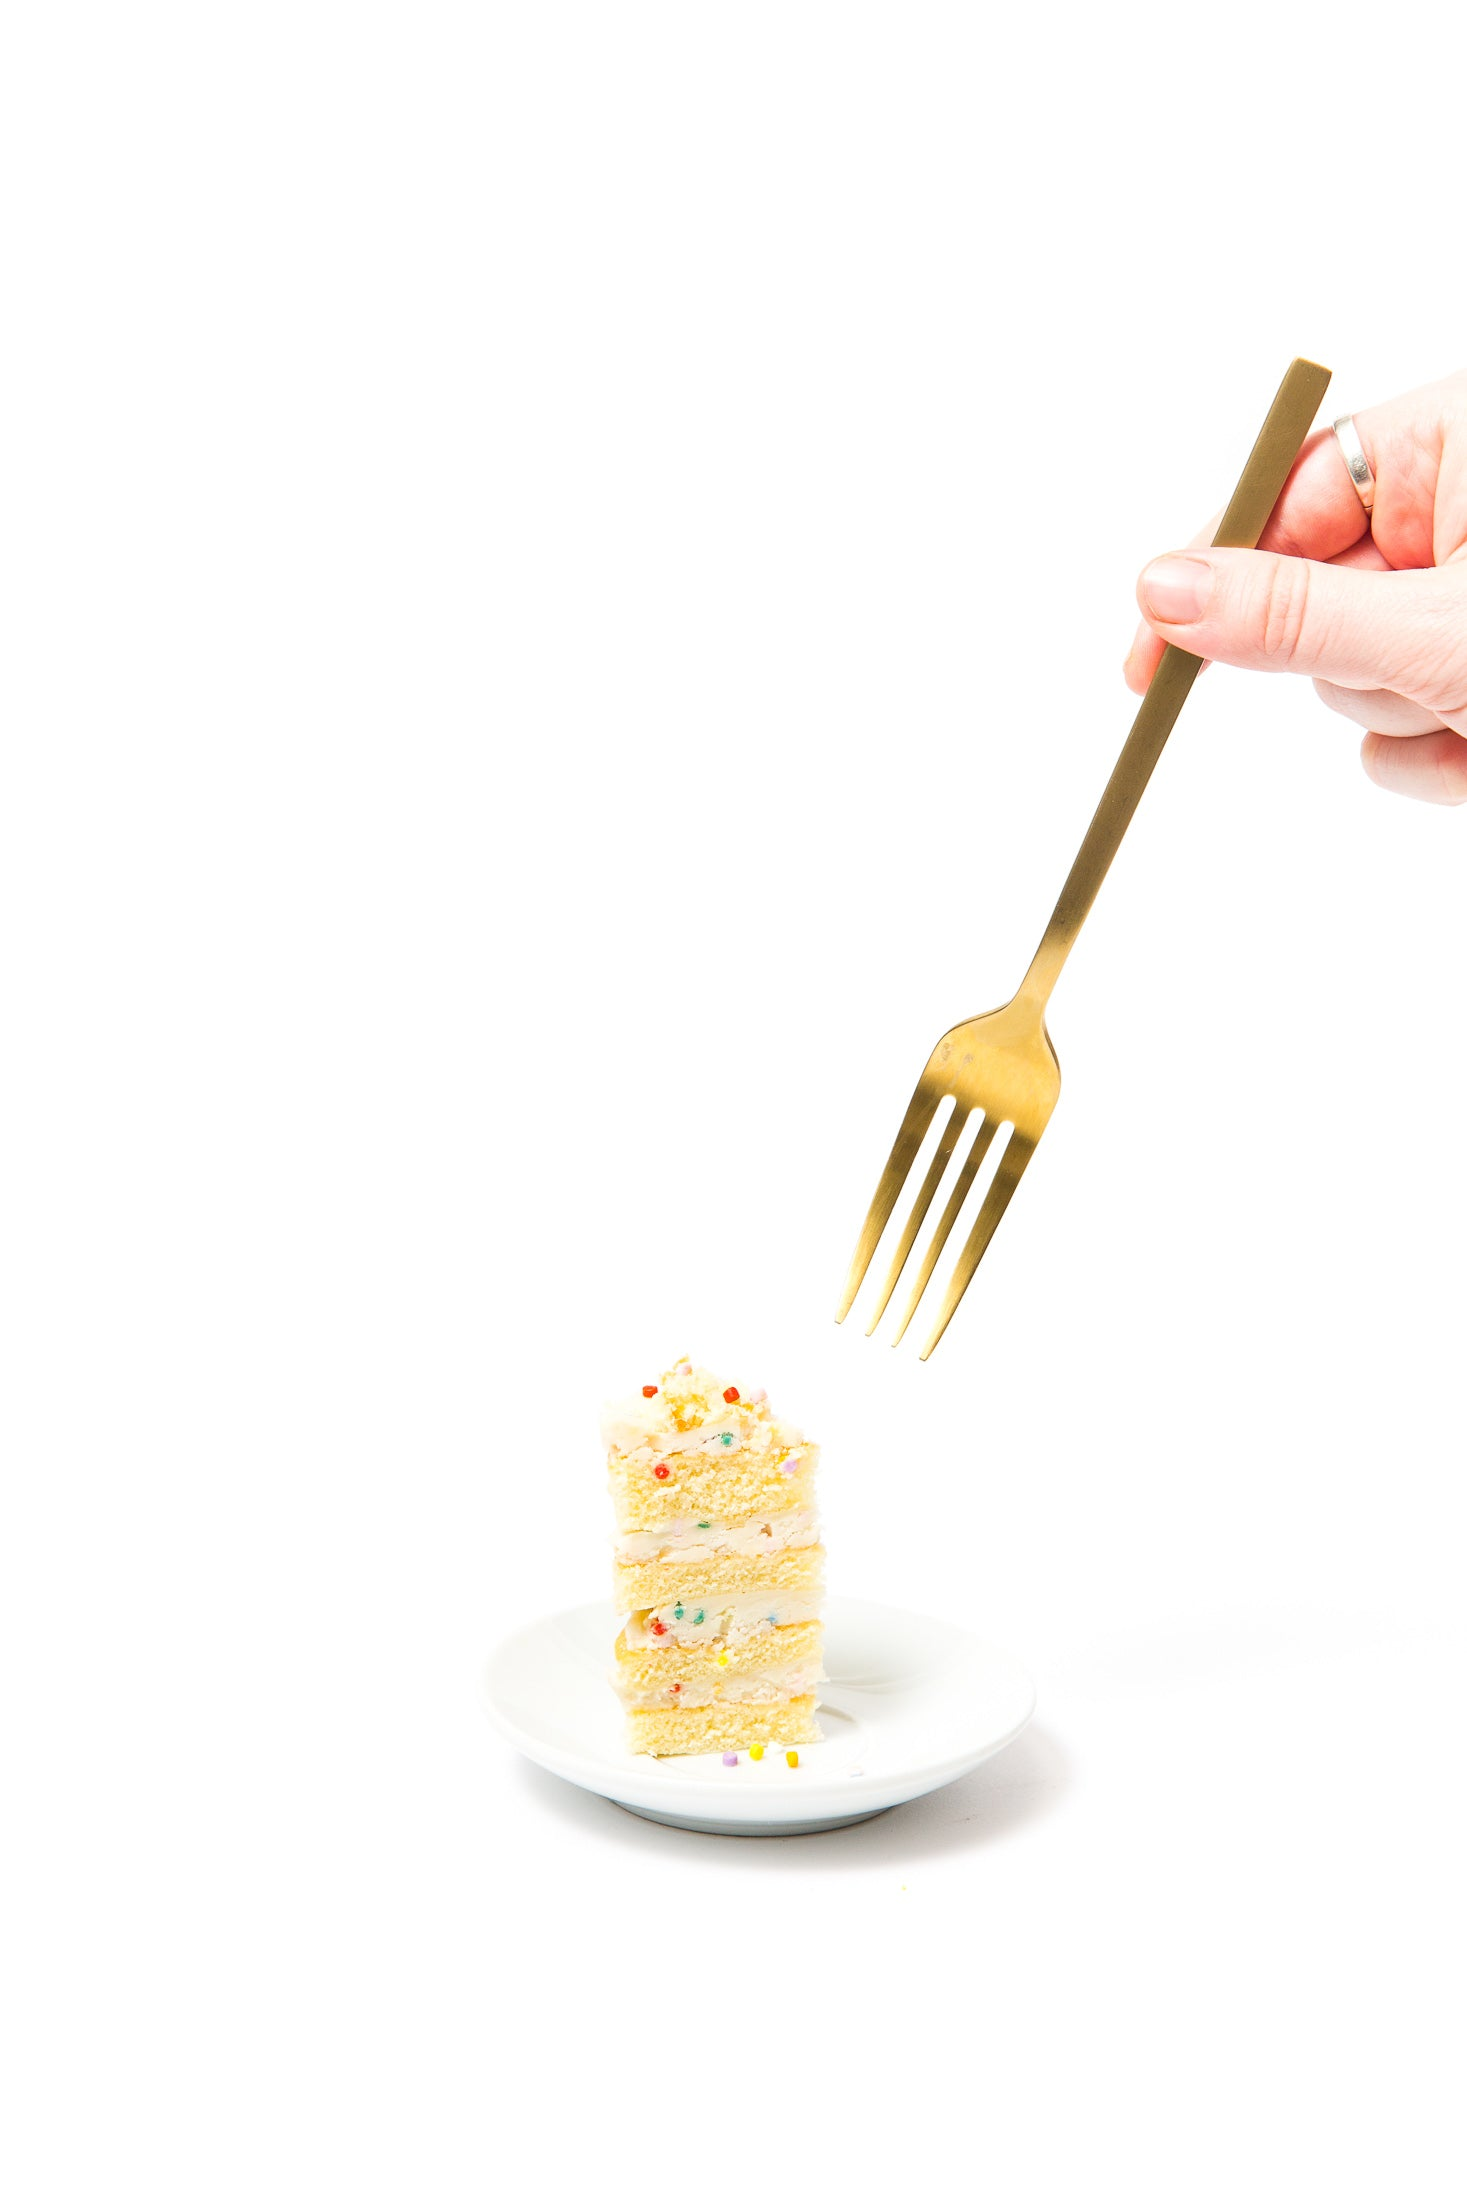 Image of side of a piece of Miss Jones Baking Co Confetti Pop Mini Cakes on a plate with a fork